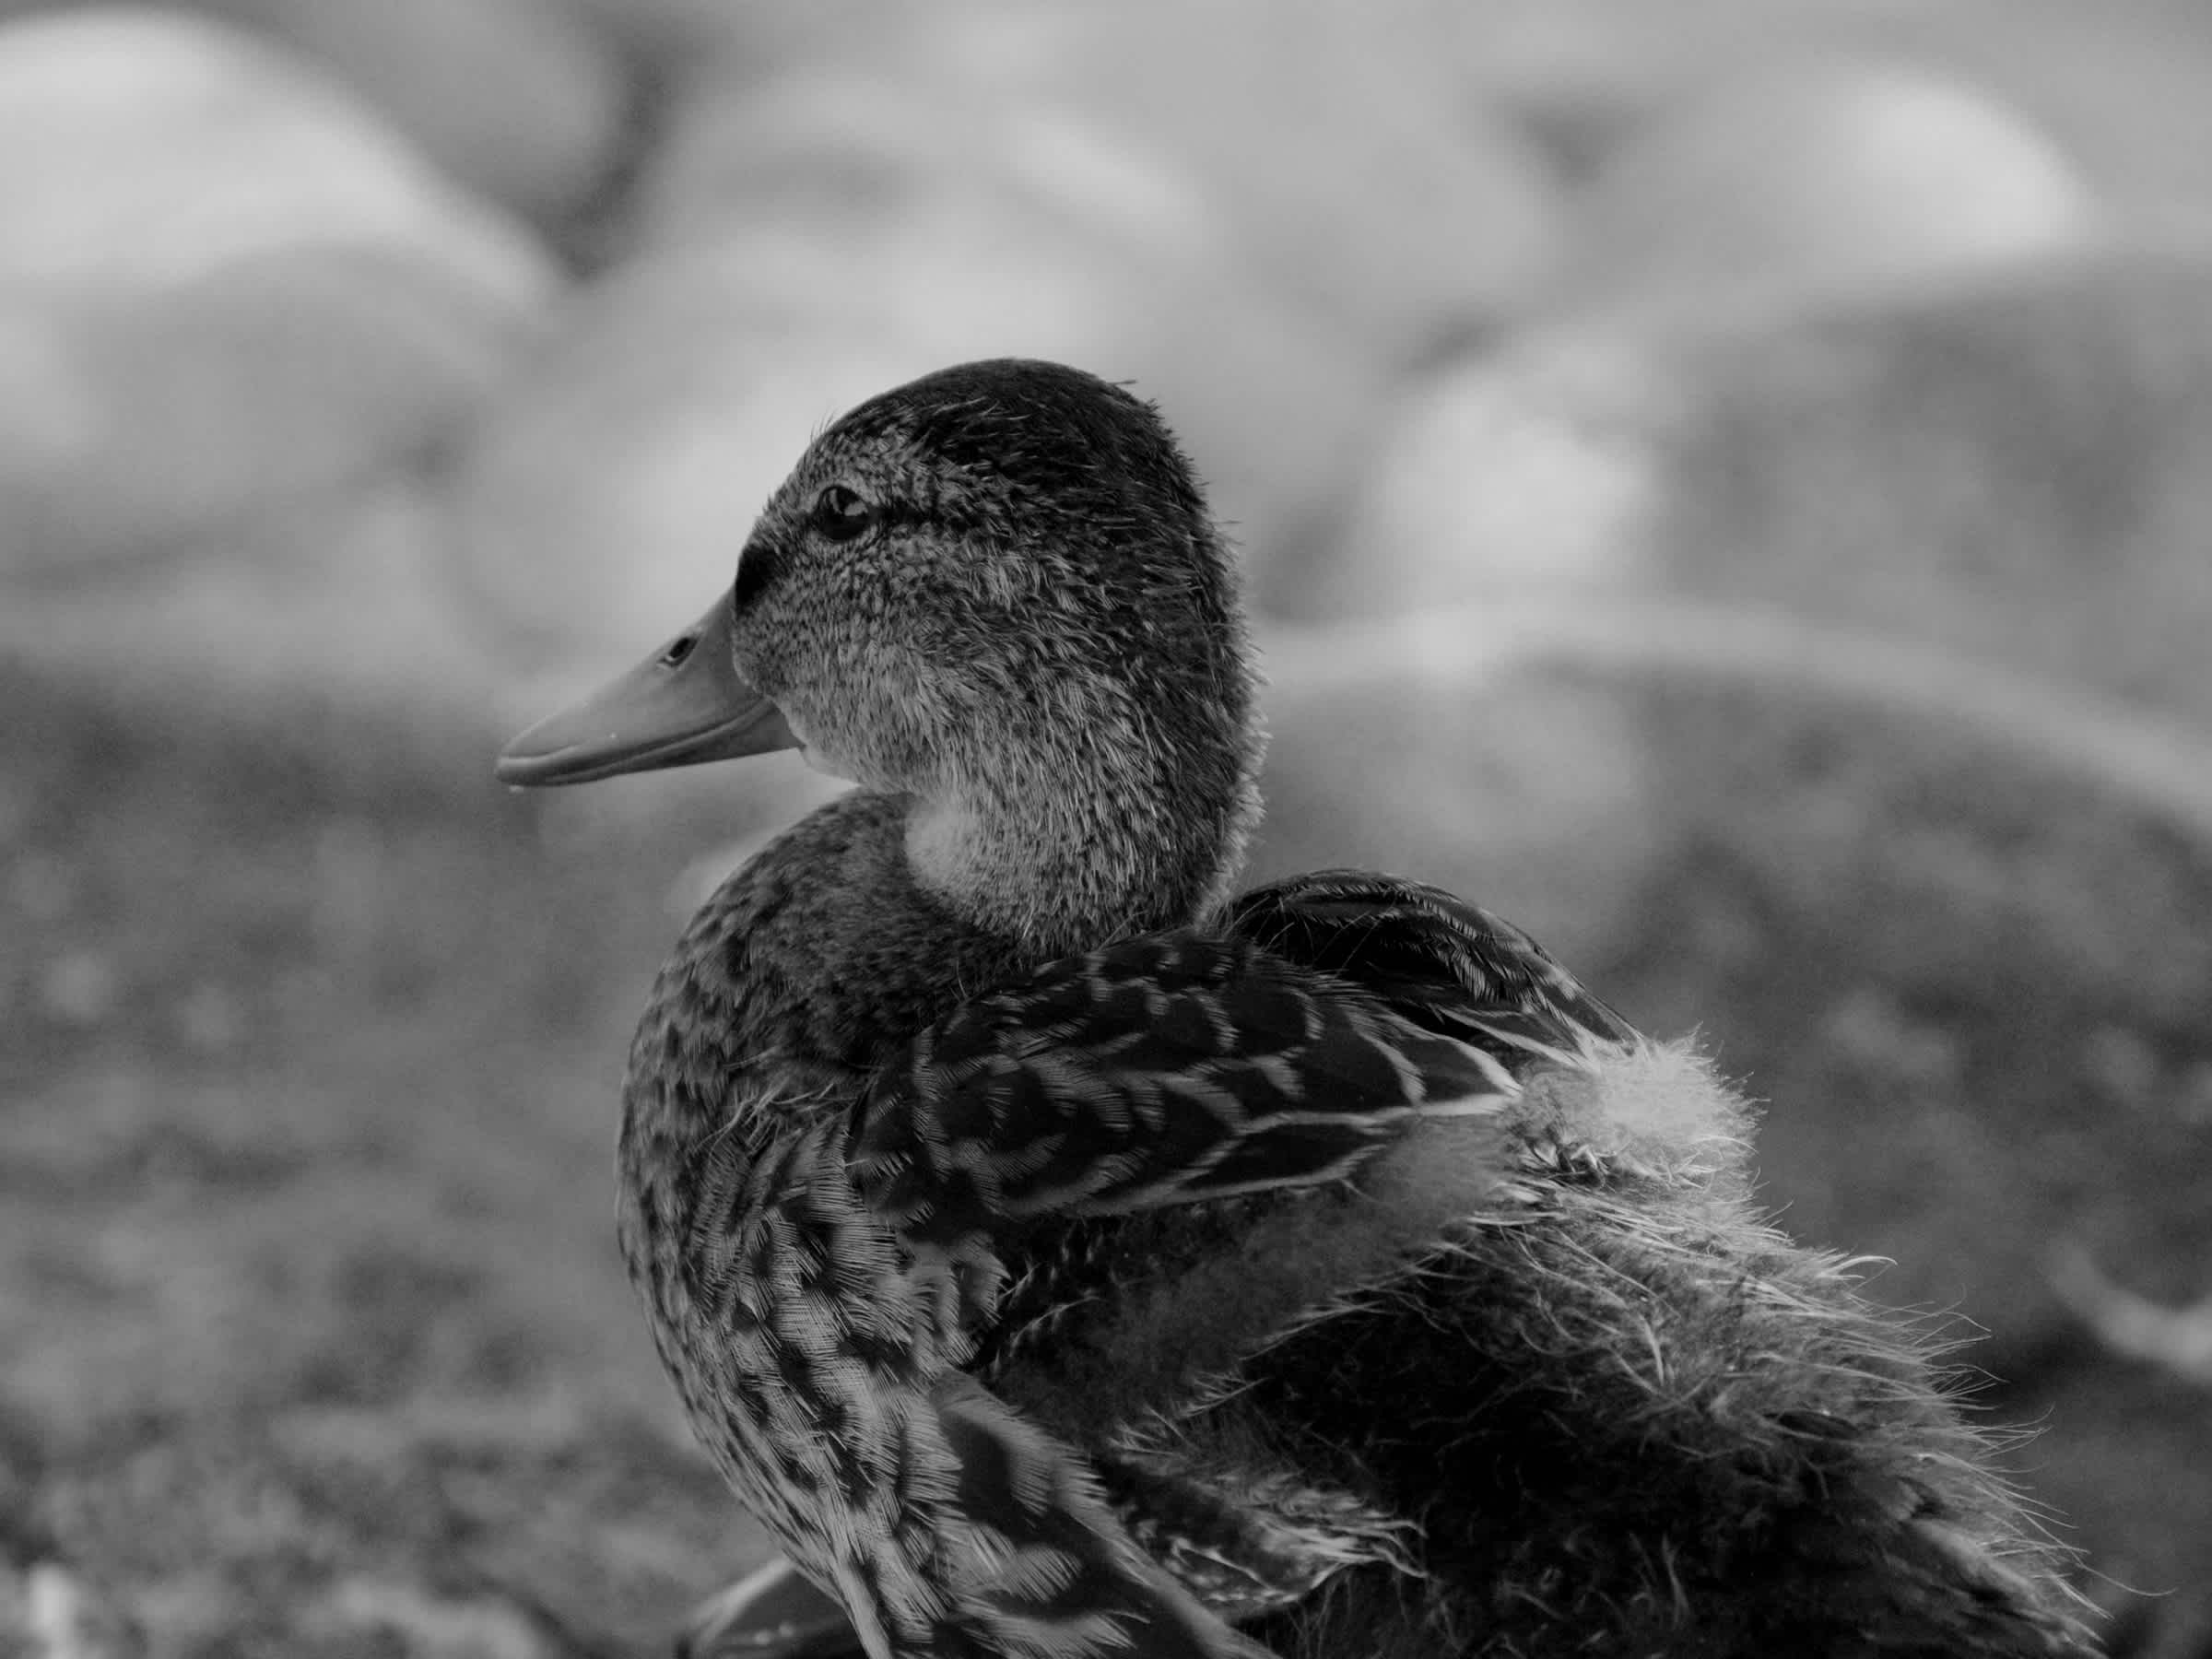 Duck in front of stones in black and white.